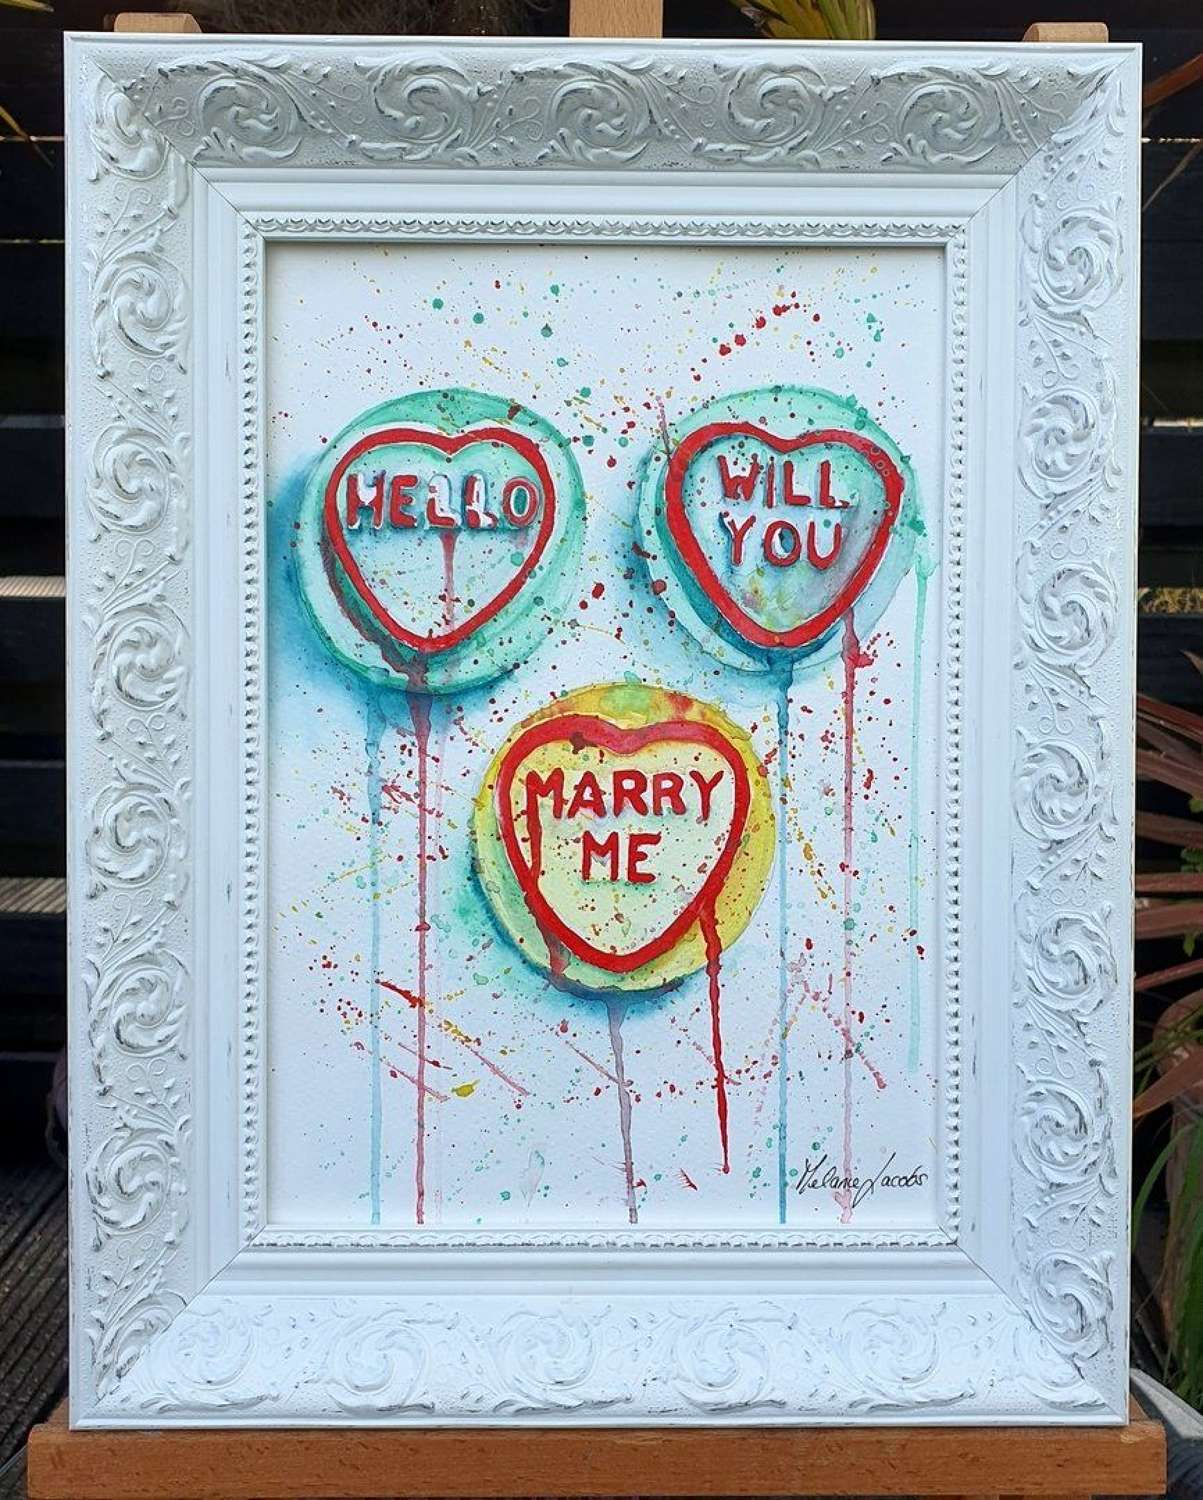 'Will You Marry Me?' Love-hearts Original Artwork By Melanie Jacobs